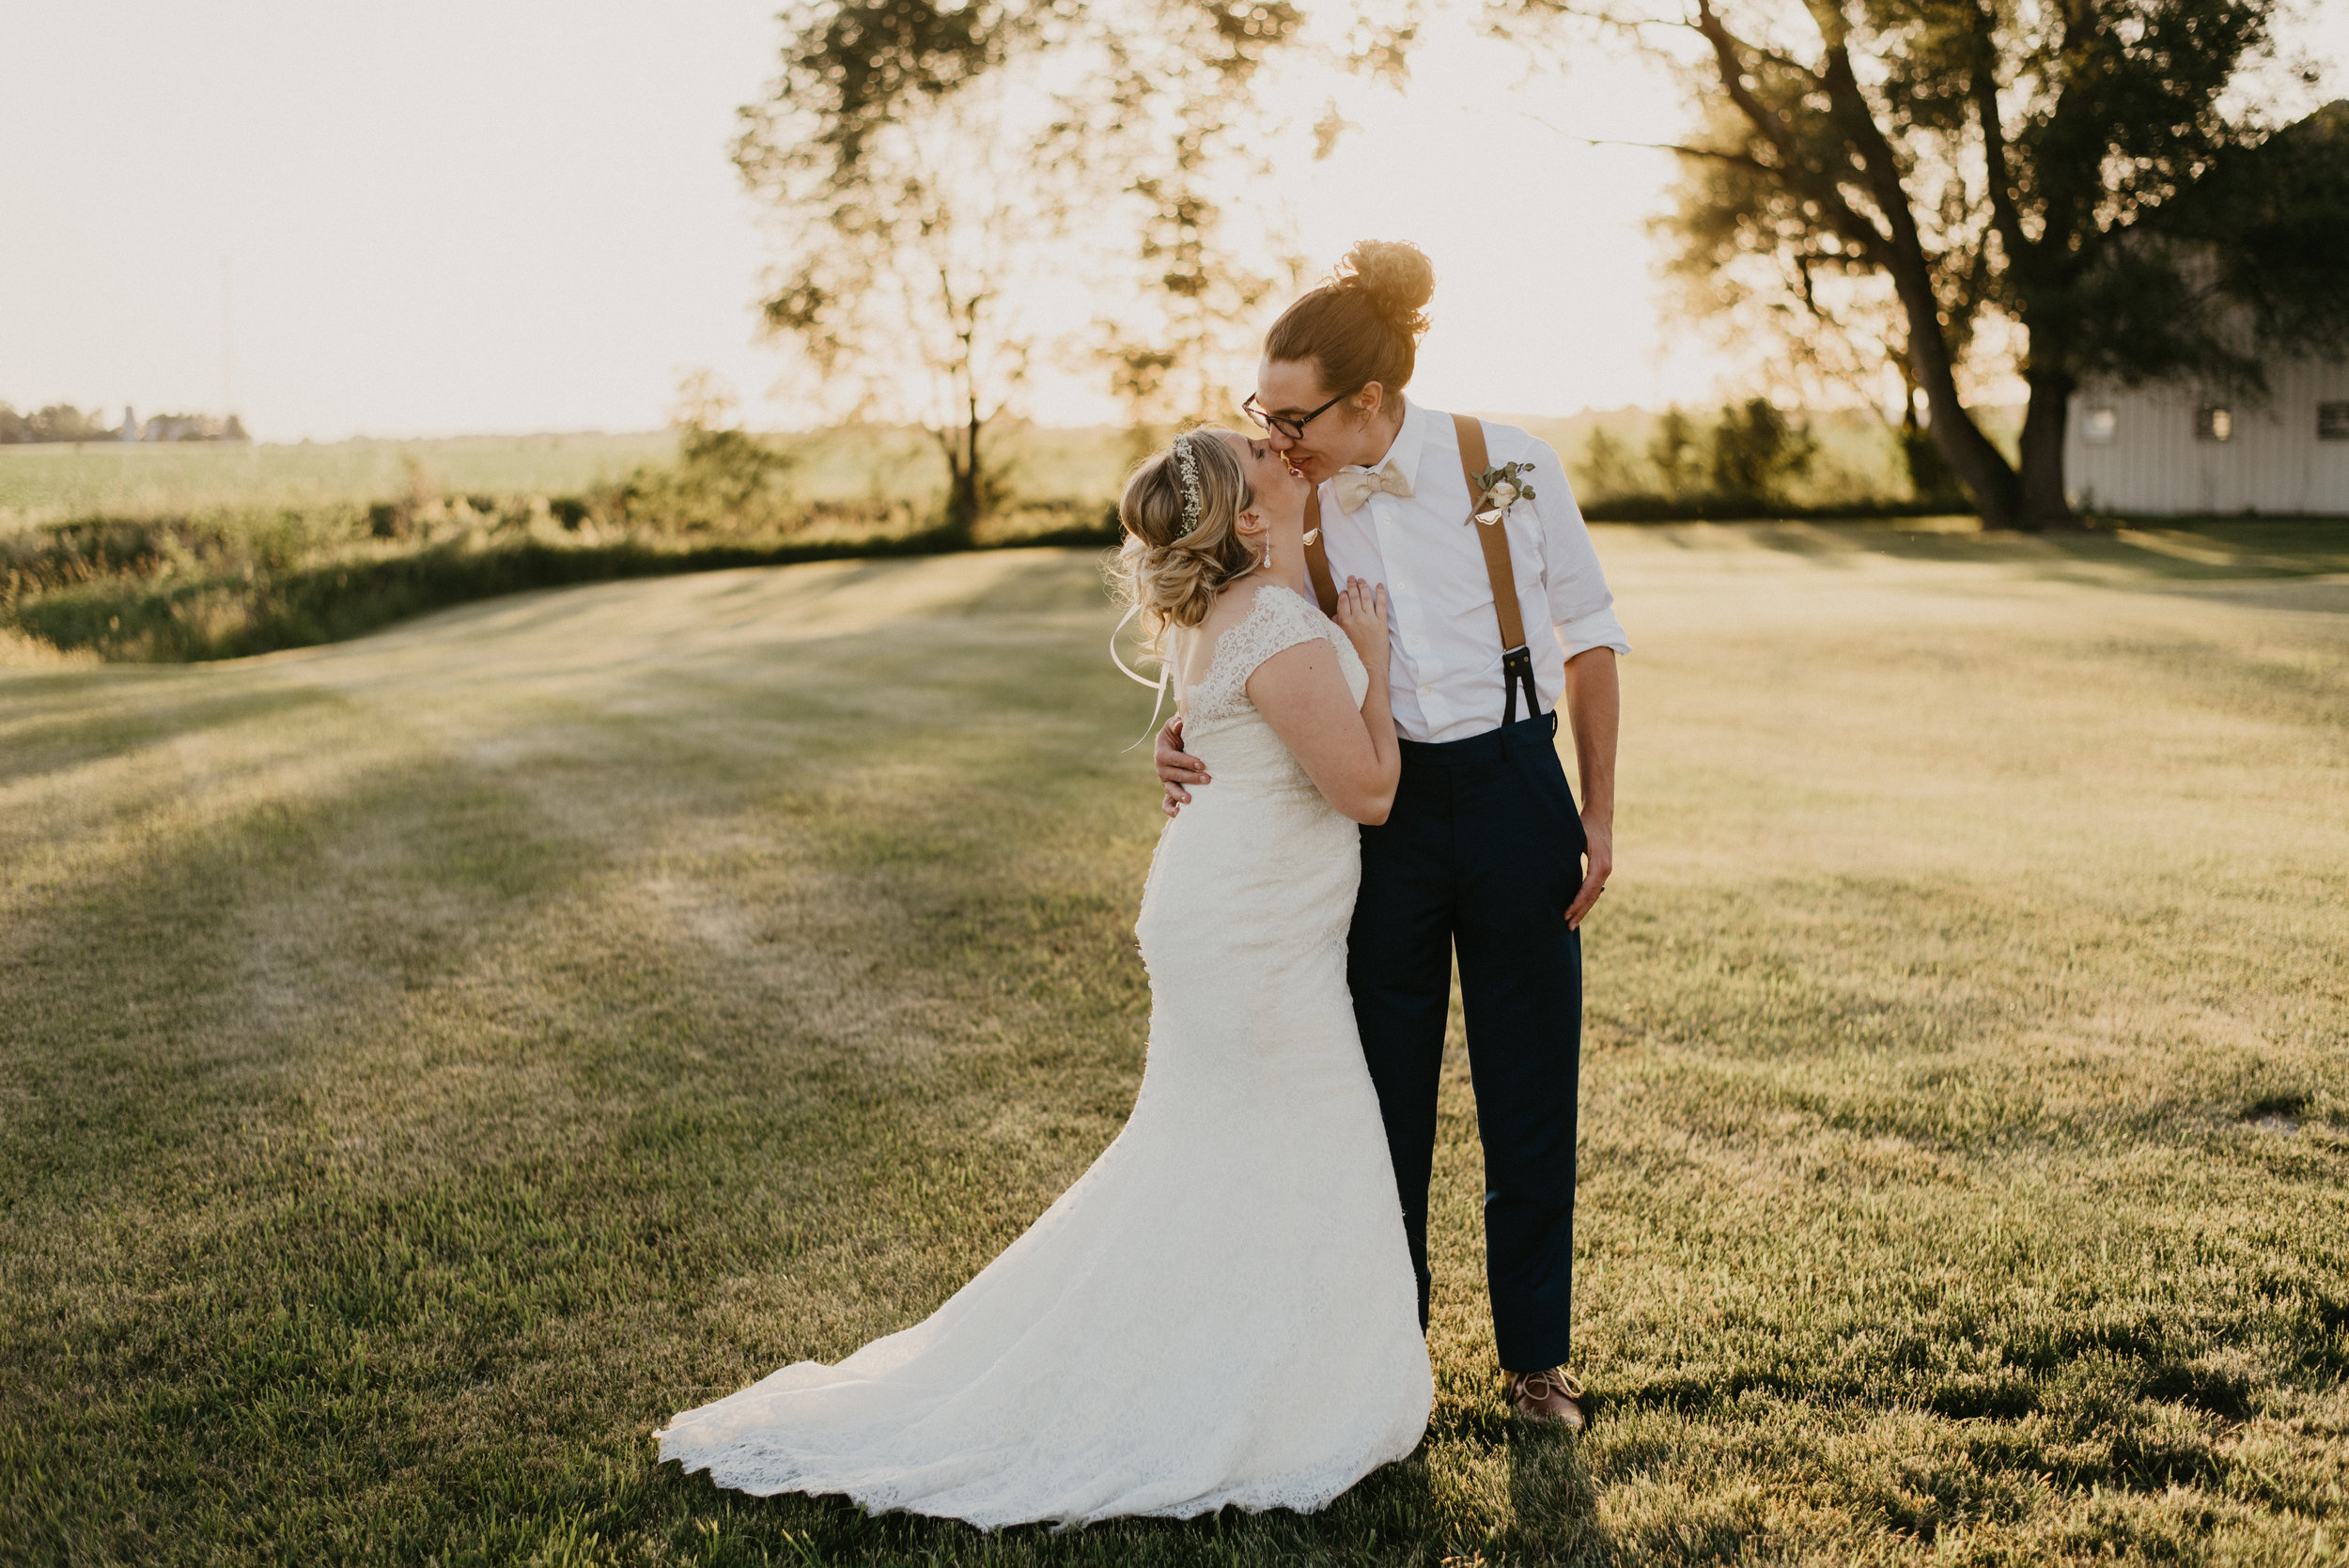 Emily and Jack - Ashley Farm Wedding | Yorkville, IL